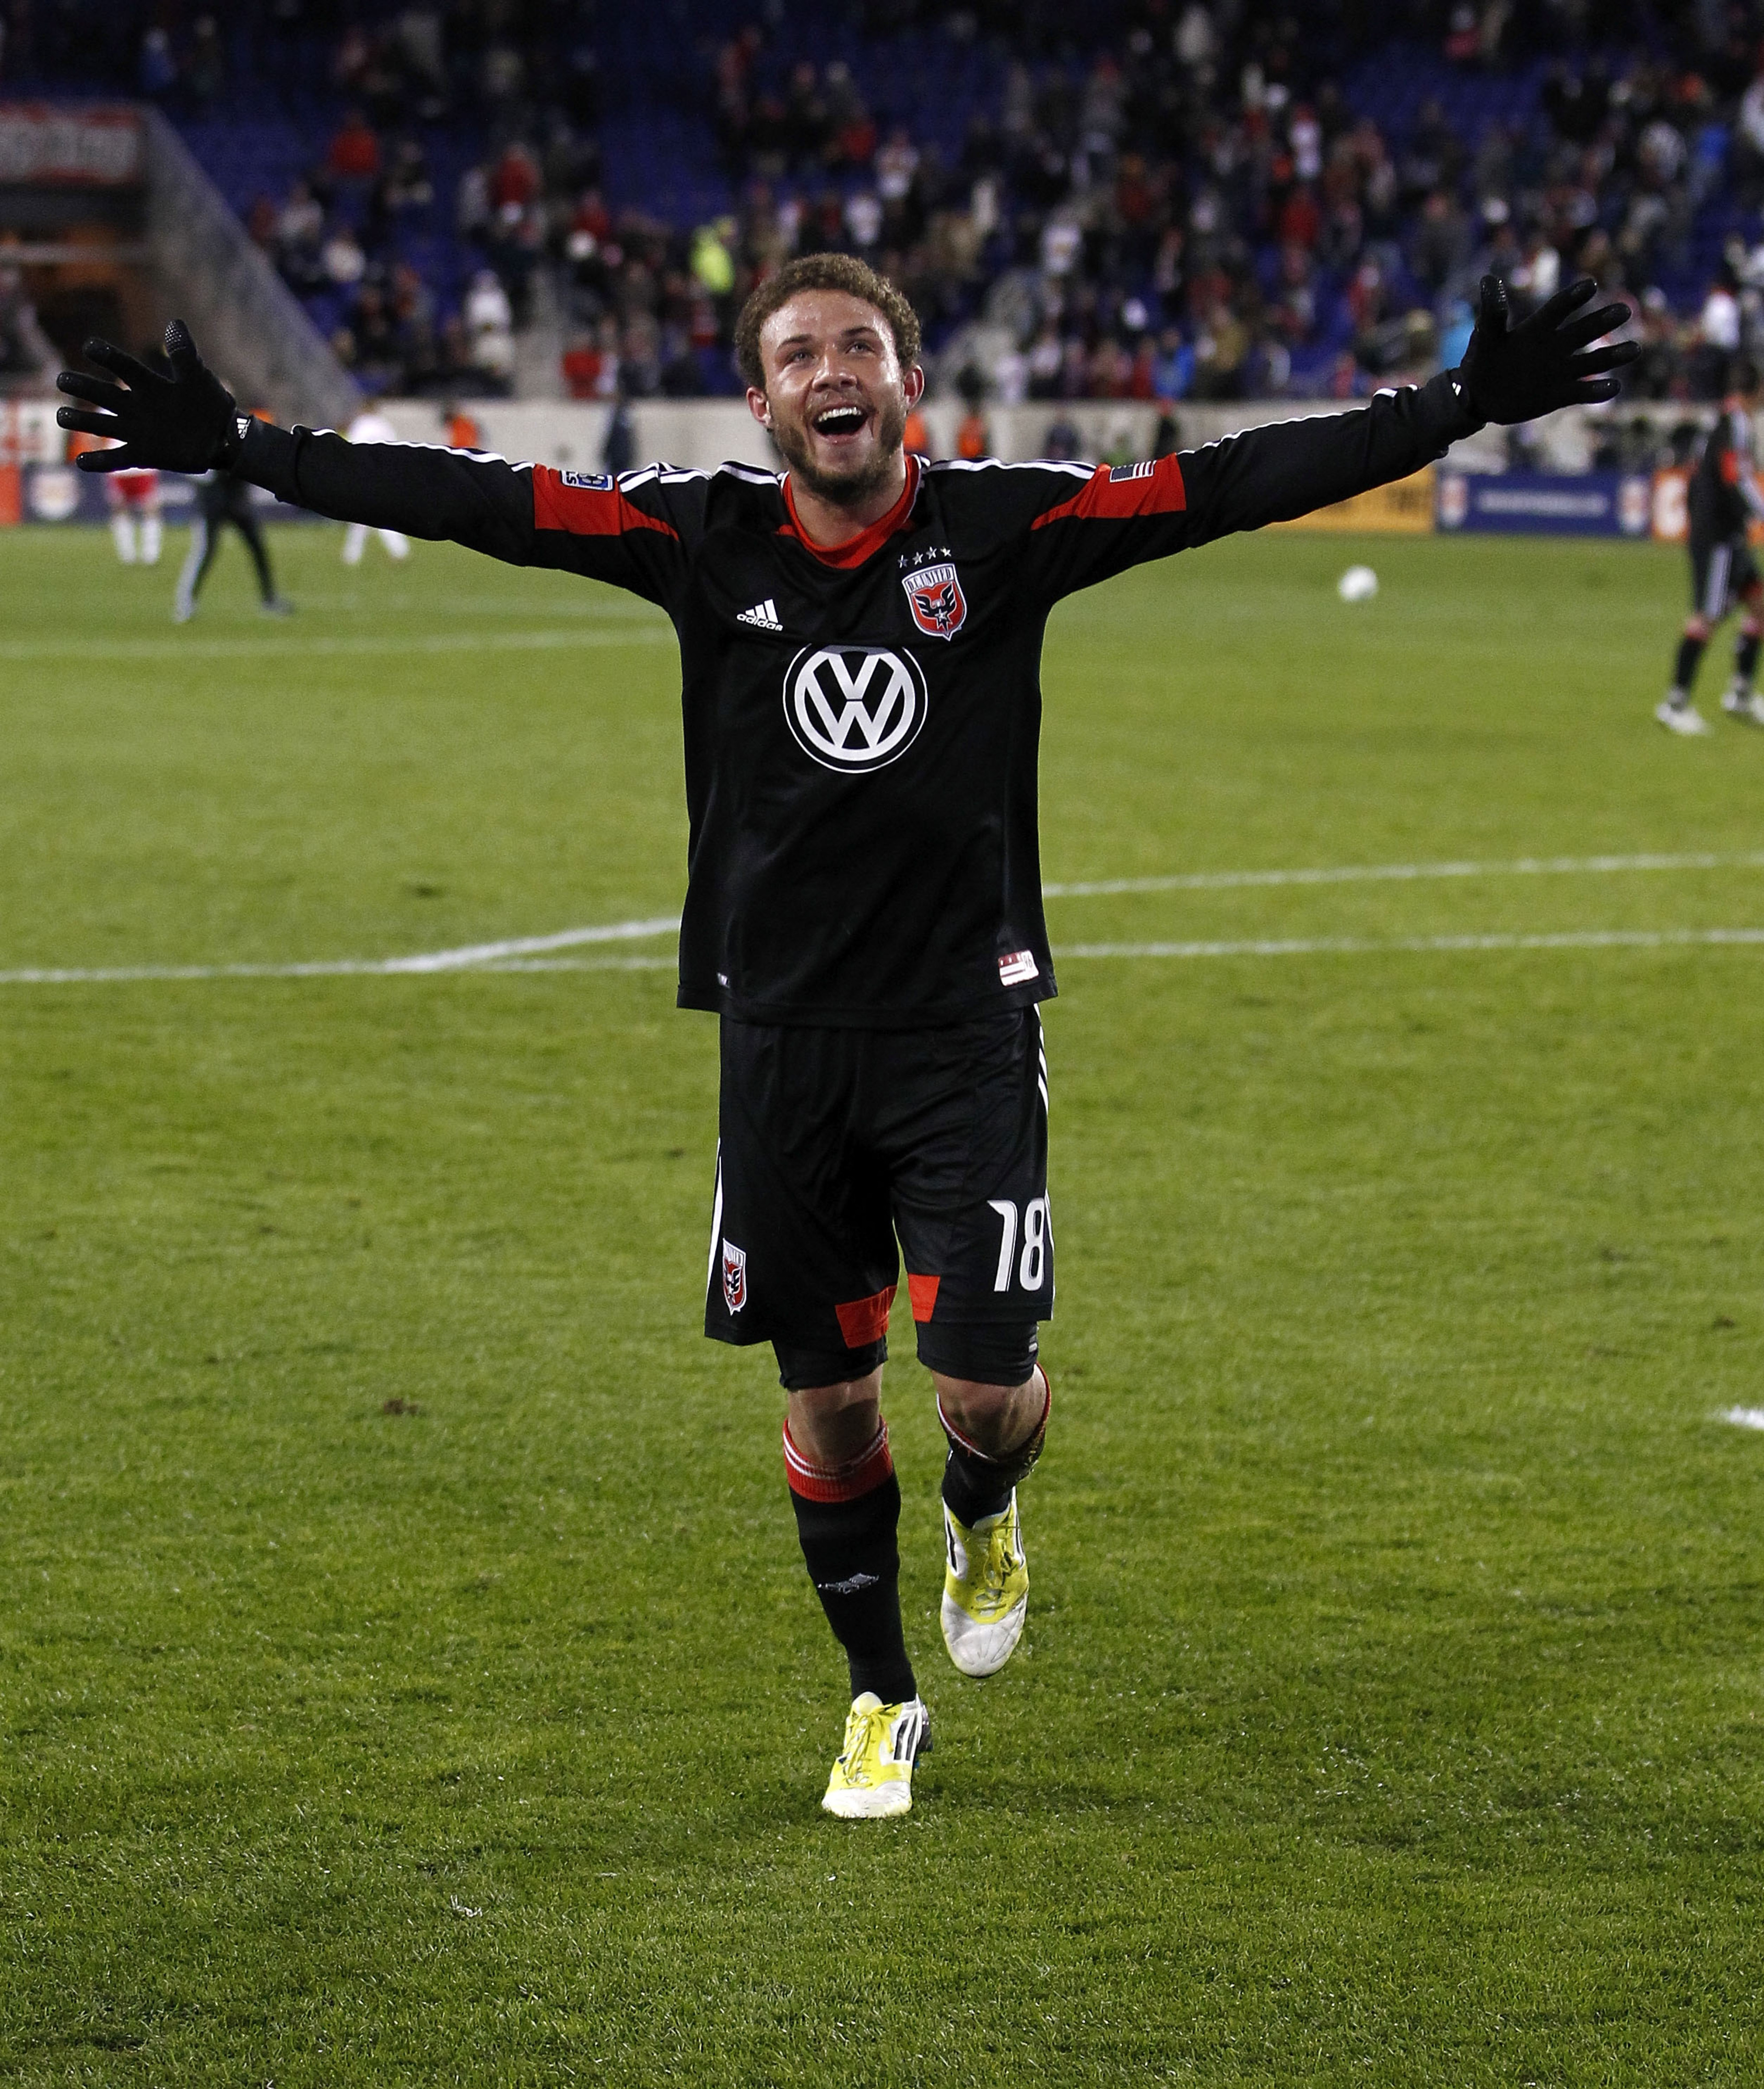 D.C. United has added great players in recent SuperDrafts, but repeating that in 2013 will be difficult.